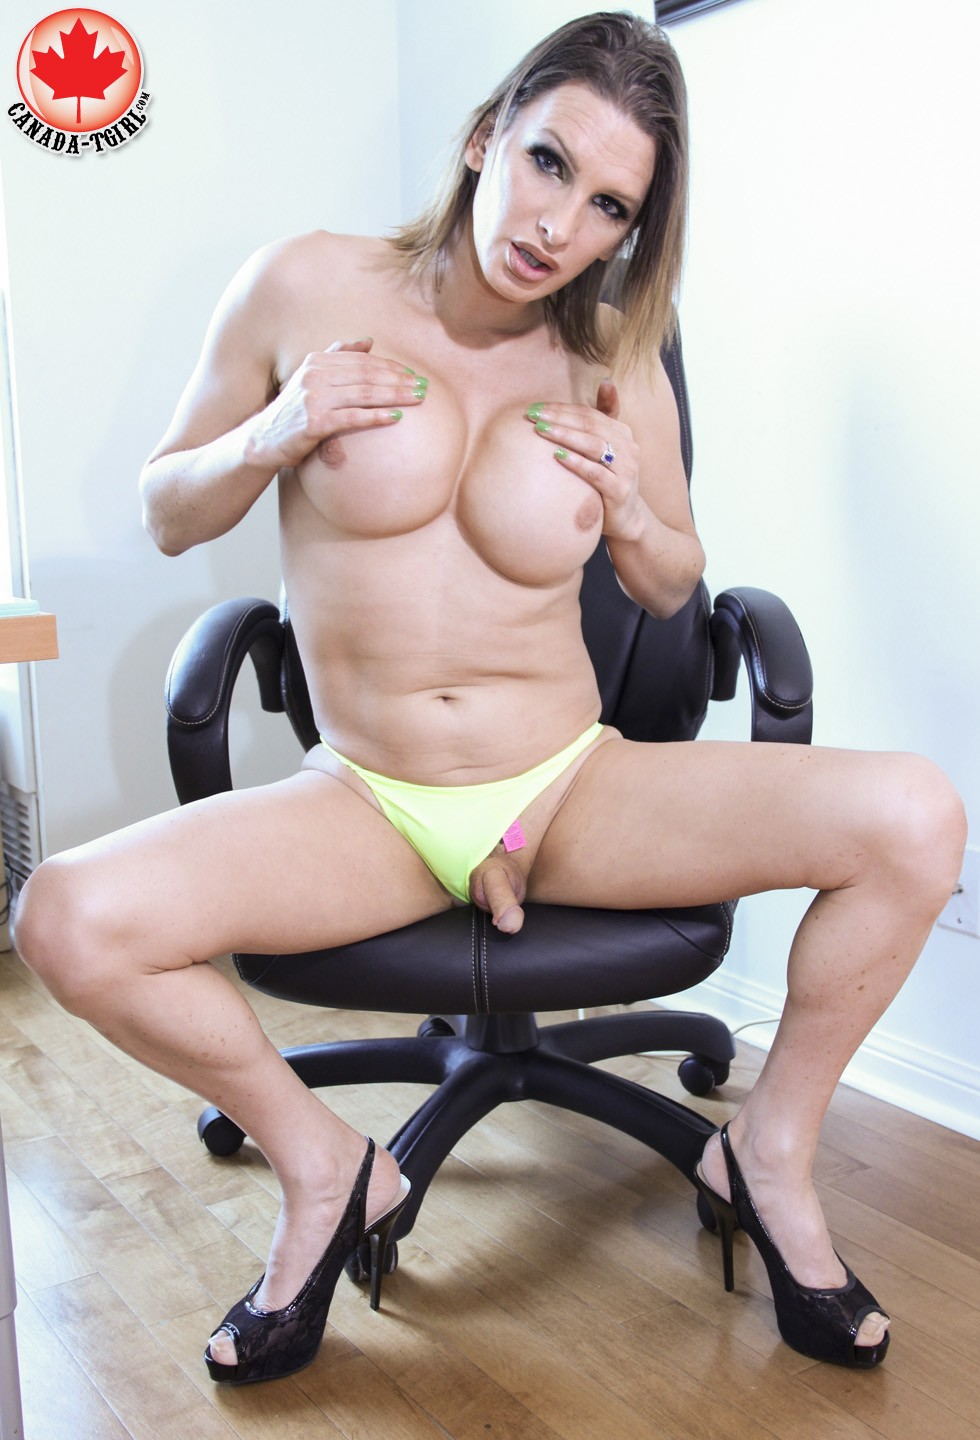 Shemale tasha jones, freesexy nude short scene